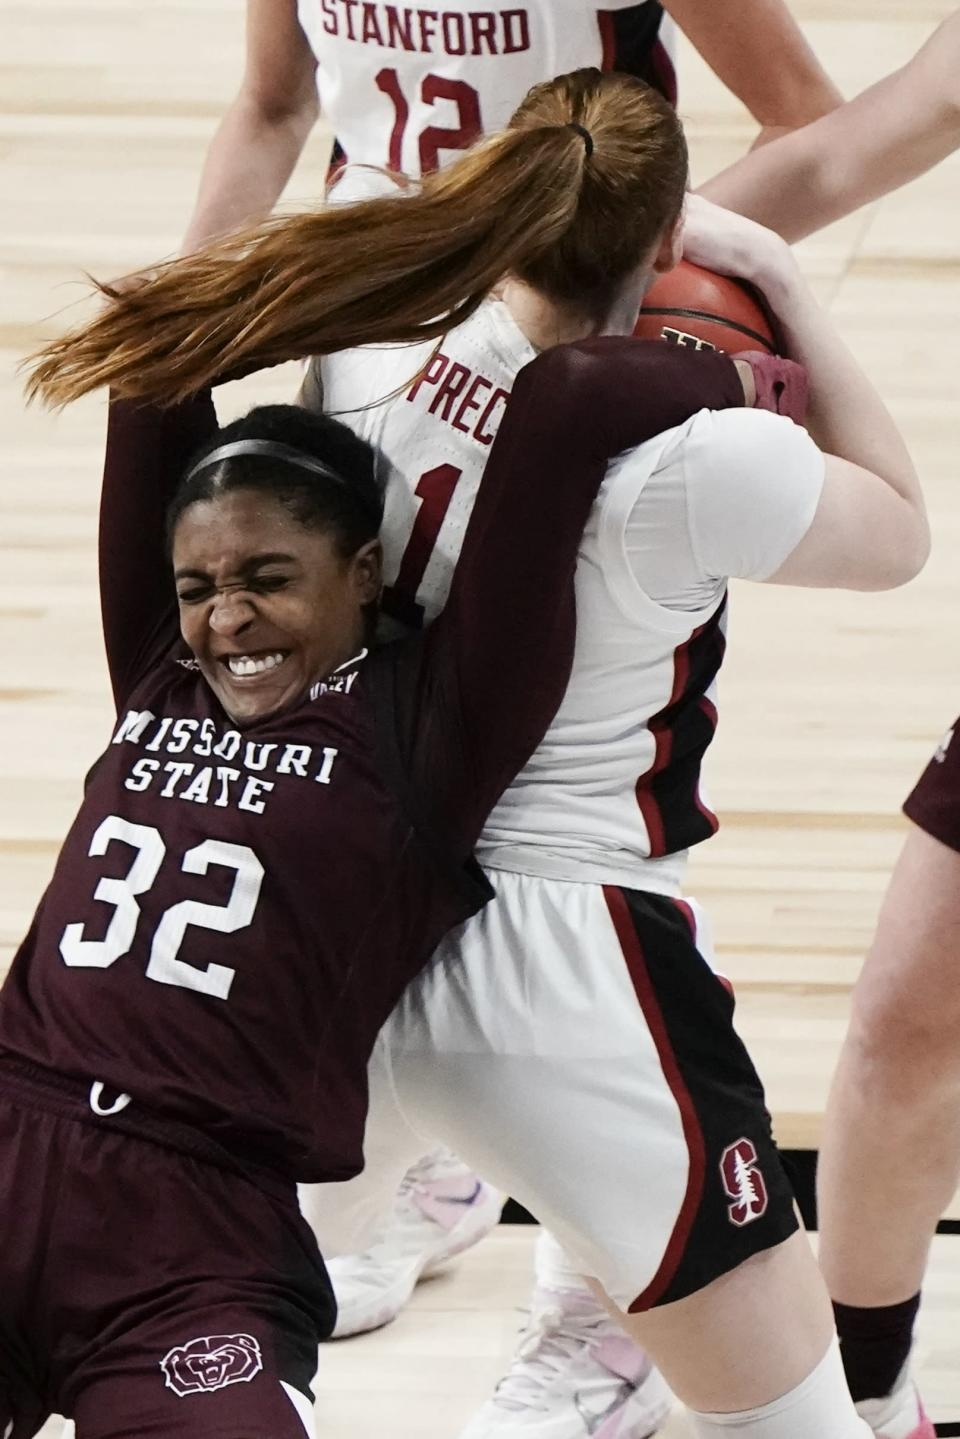 Missouri State's Jasmine Franklin and Stanford's Ashten Prechtel battle for a rebound during the second half of an NCAA college basketball game in the Sweet 16 round of the Women's NCAA tournament Sunday, March 28, 2021, at the Alamodome in San Antonio. (AP Photo/Morry Gash)